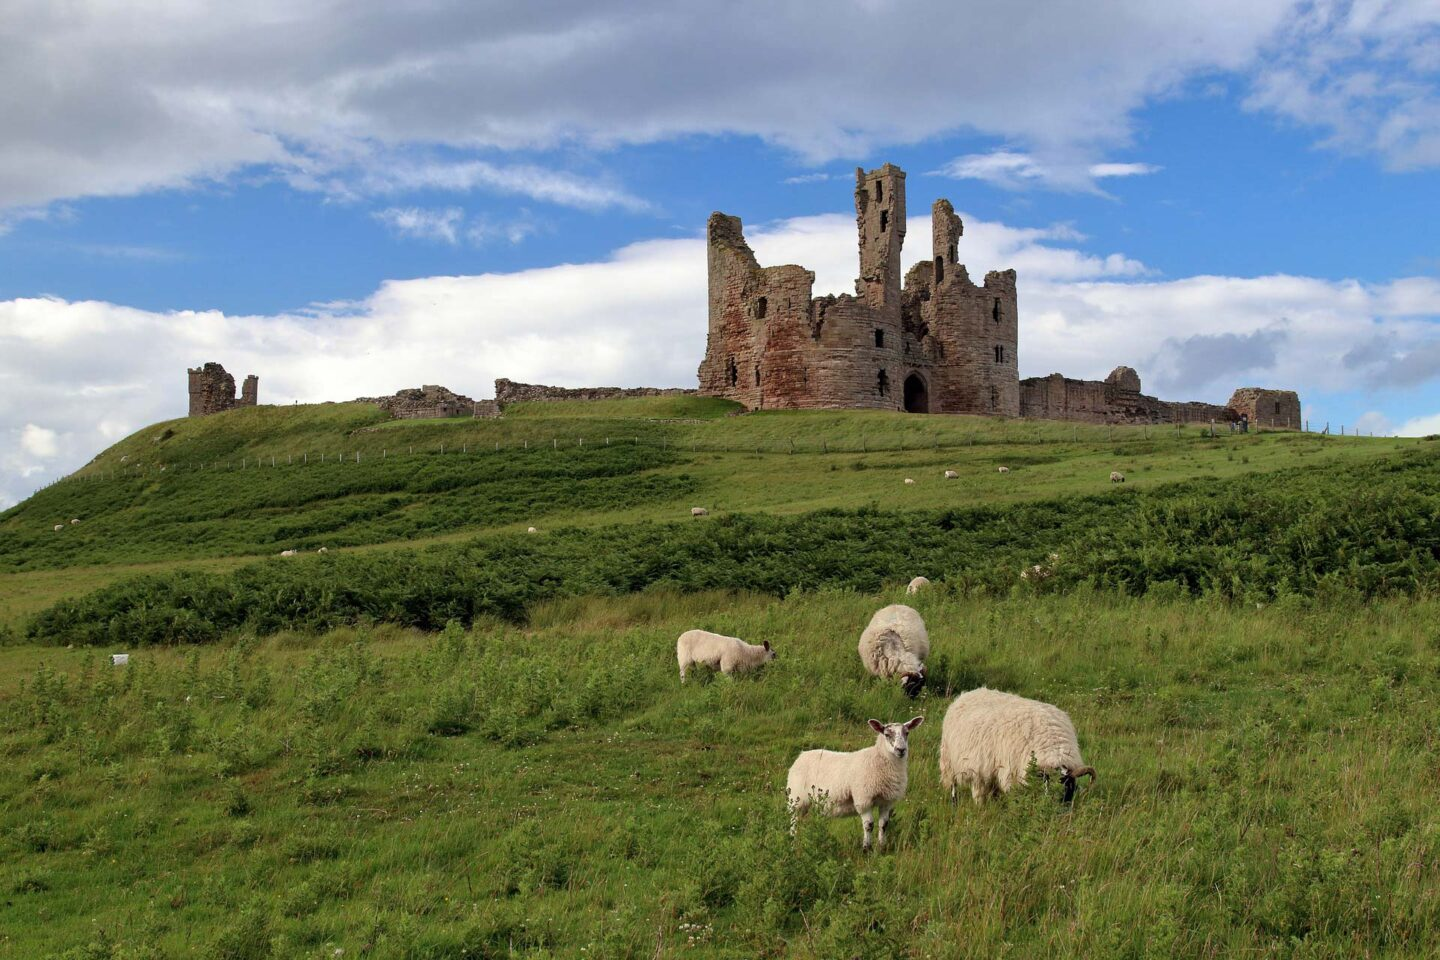 Dunstanburgh Castle, close to the village of Craster on the Northumberland coast